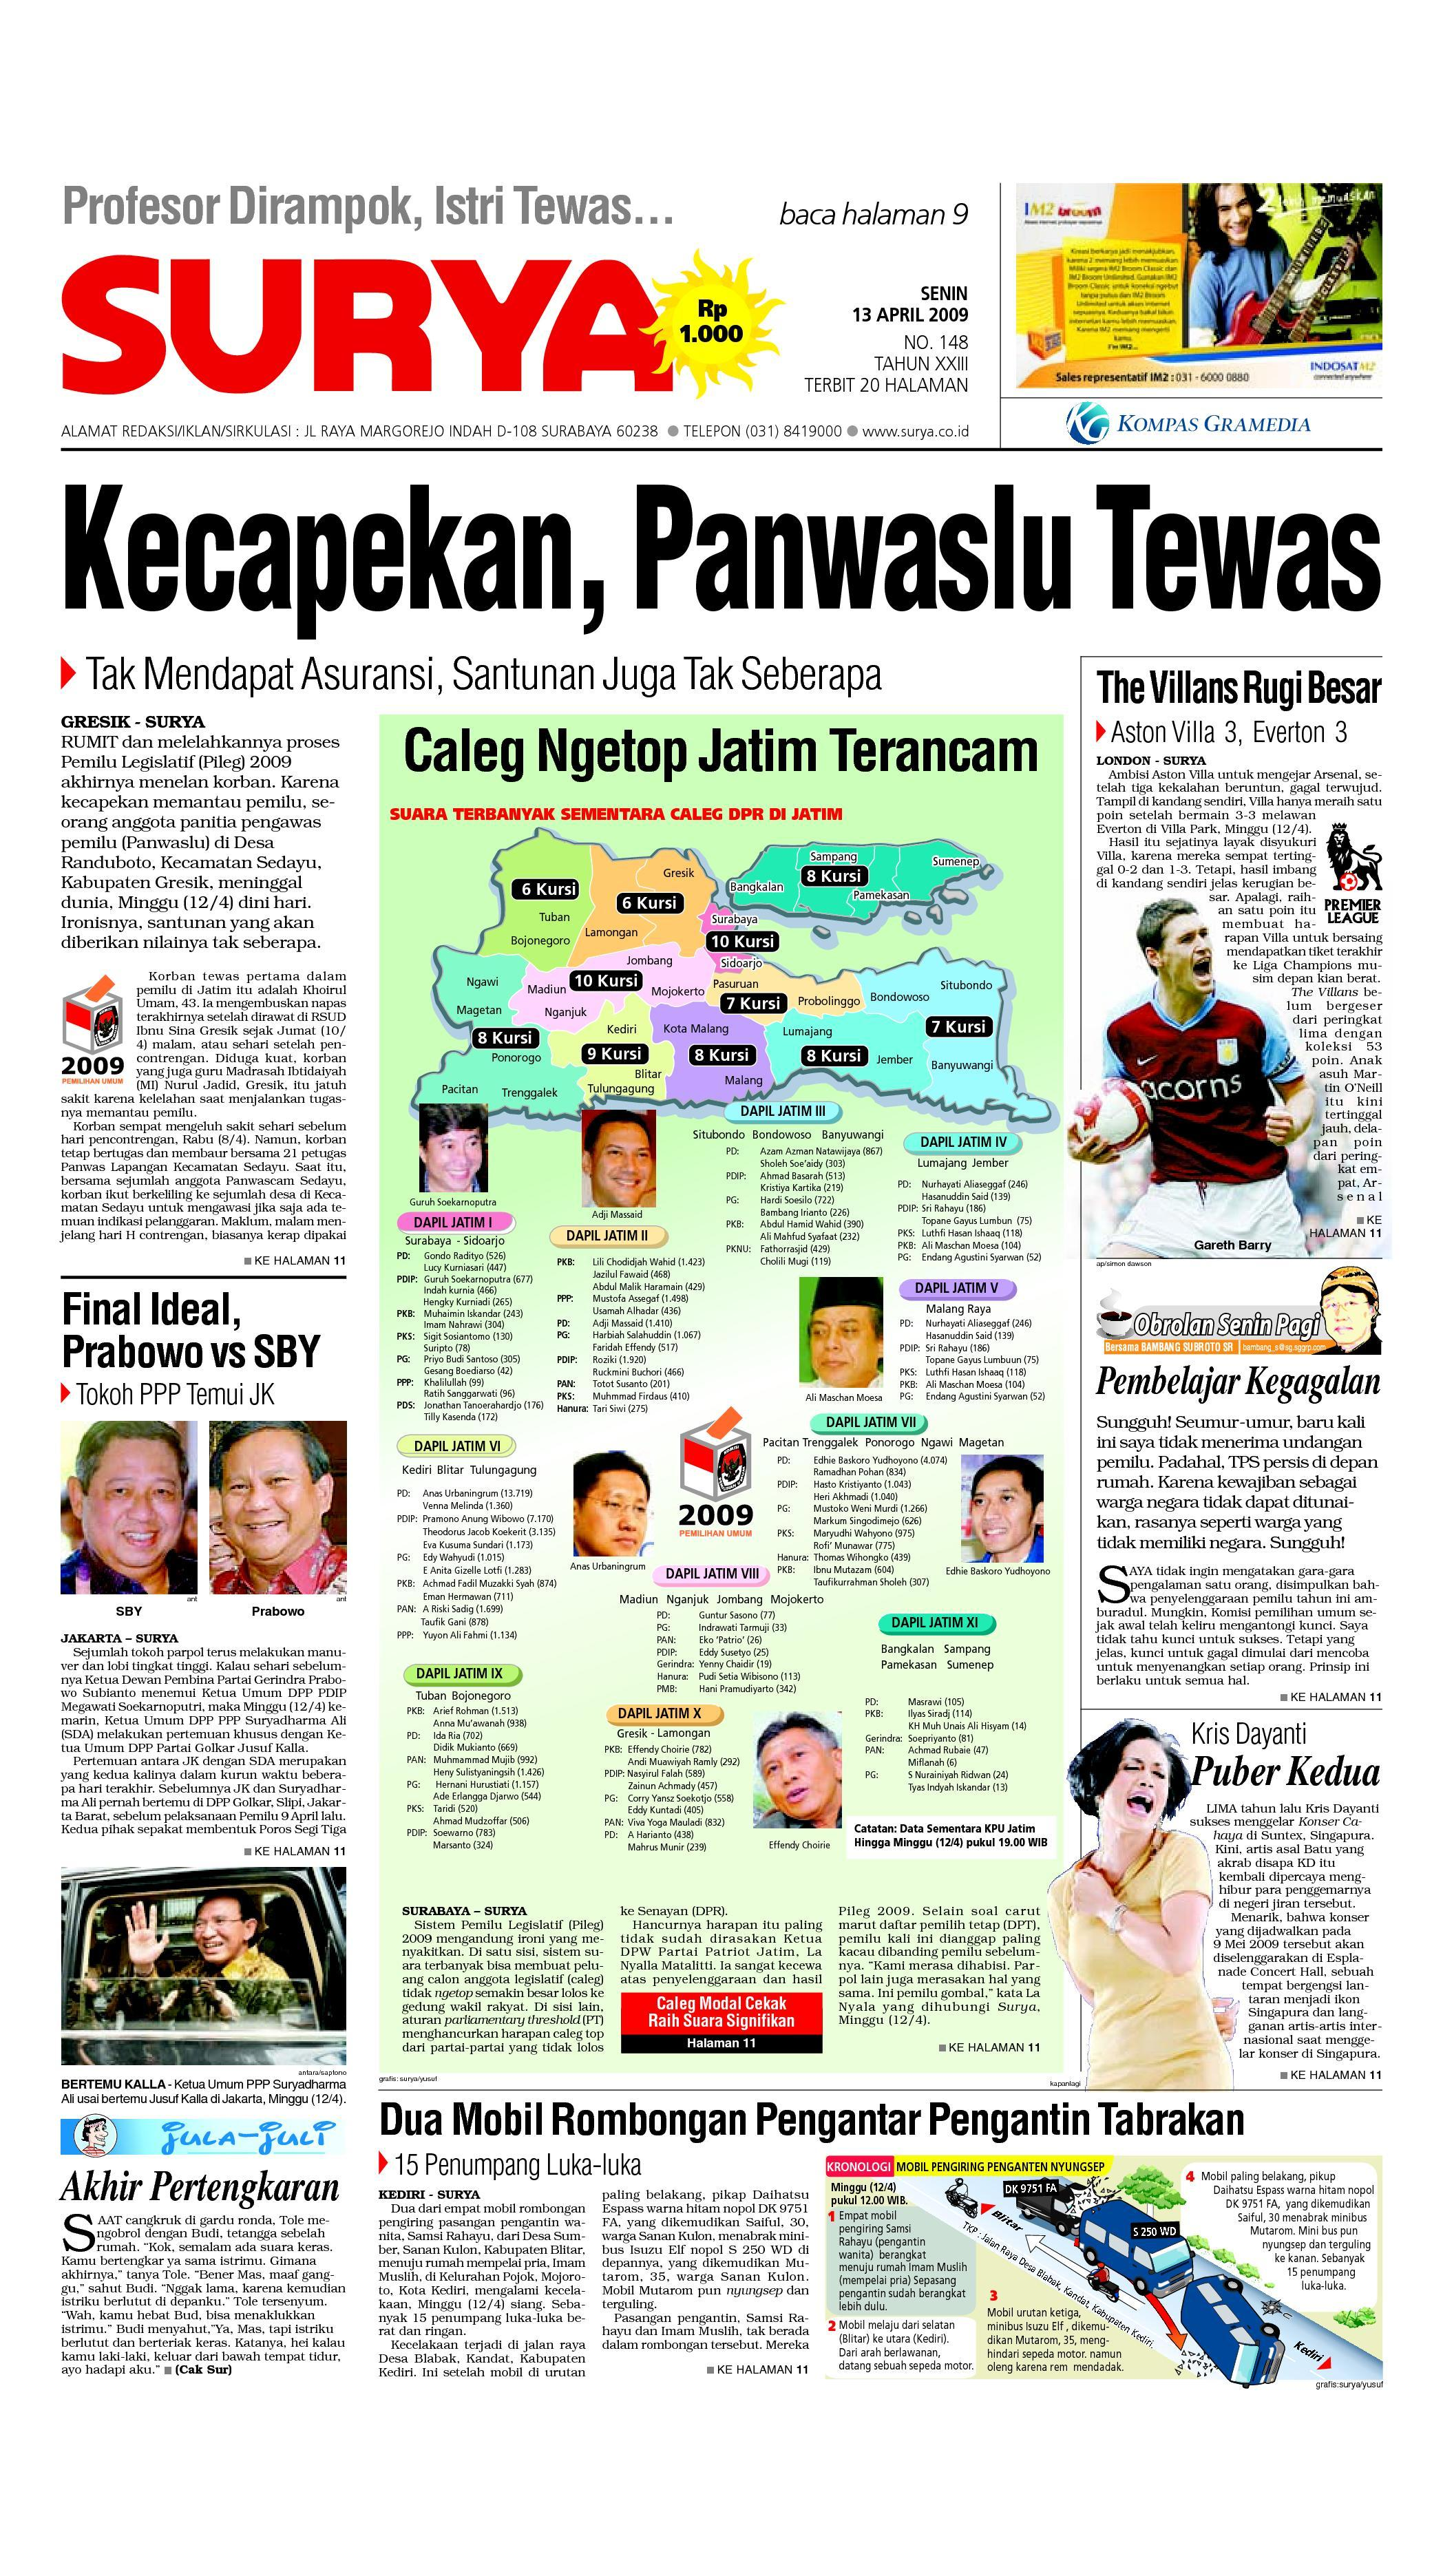 surya edisi cetak 27 april 2009 by harian surya issuu